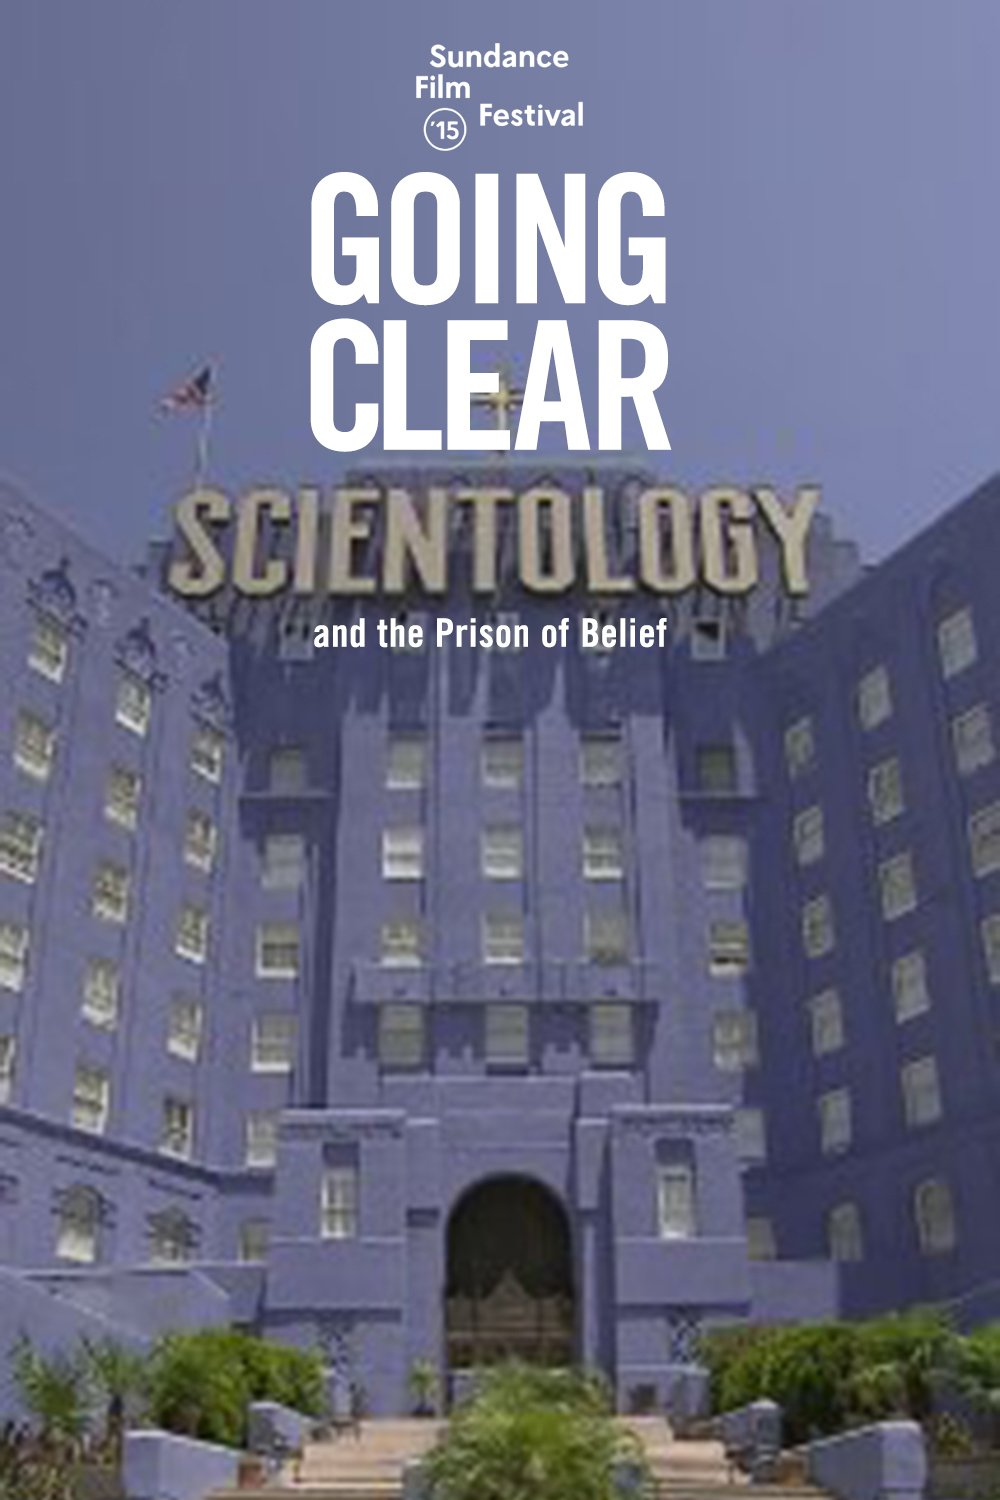 meet the izzards documentary about scientology